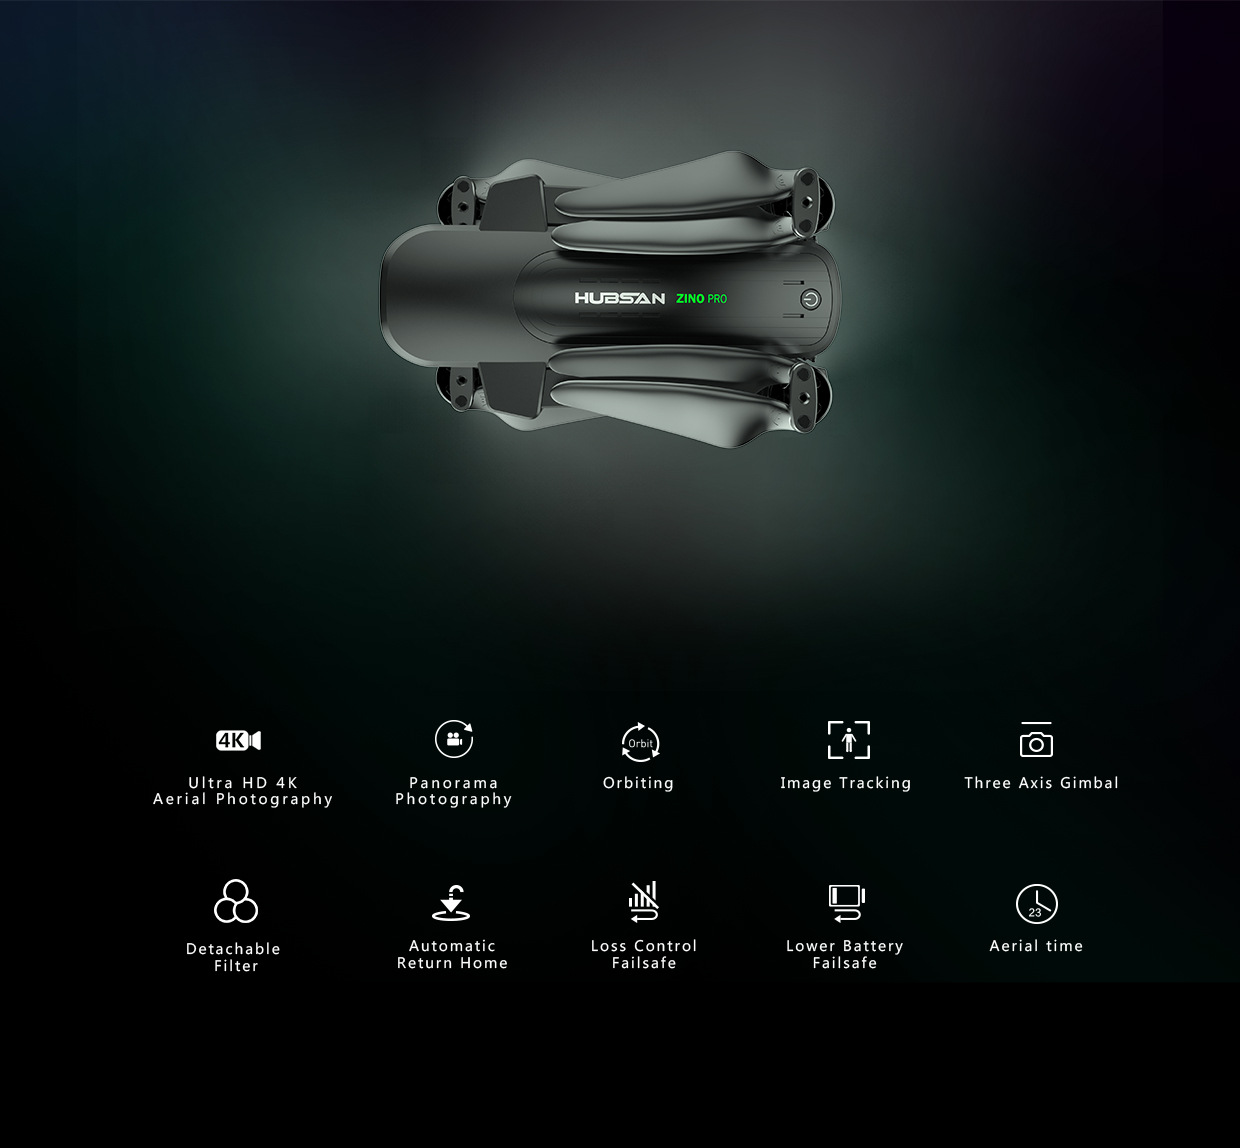 HUBSAN Zinopro Brushless 4K High-definition Camera Double Star Gps Positioning Around Waypoints Ray Flight Unmanned Aerial Vehic